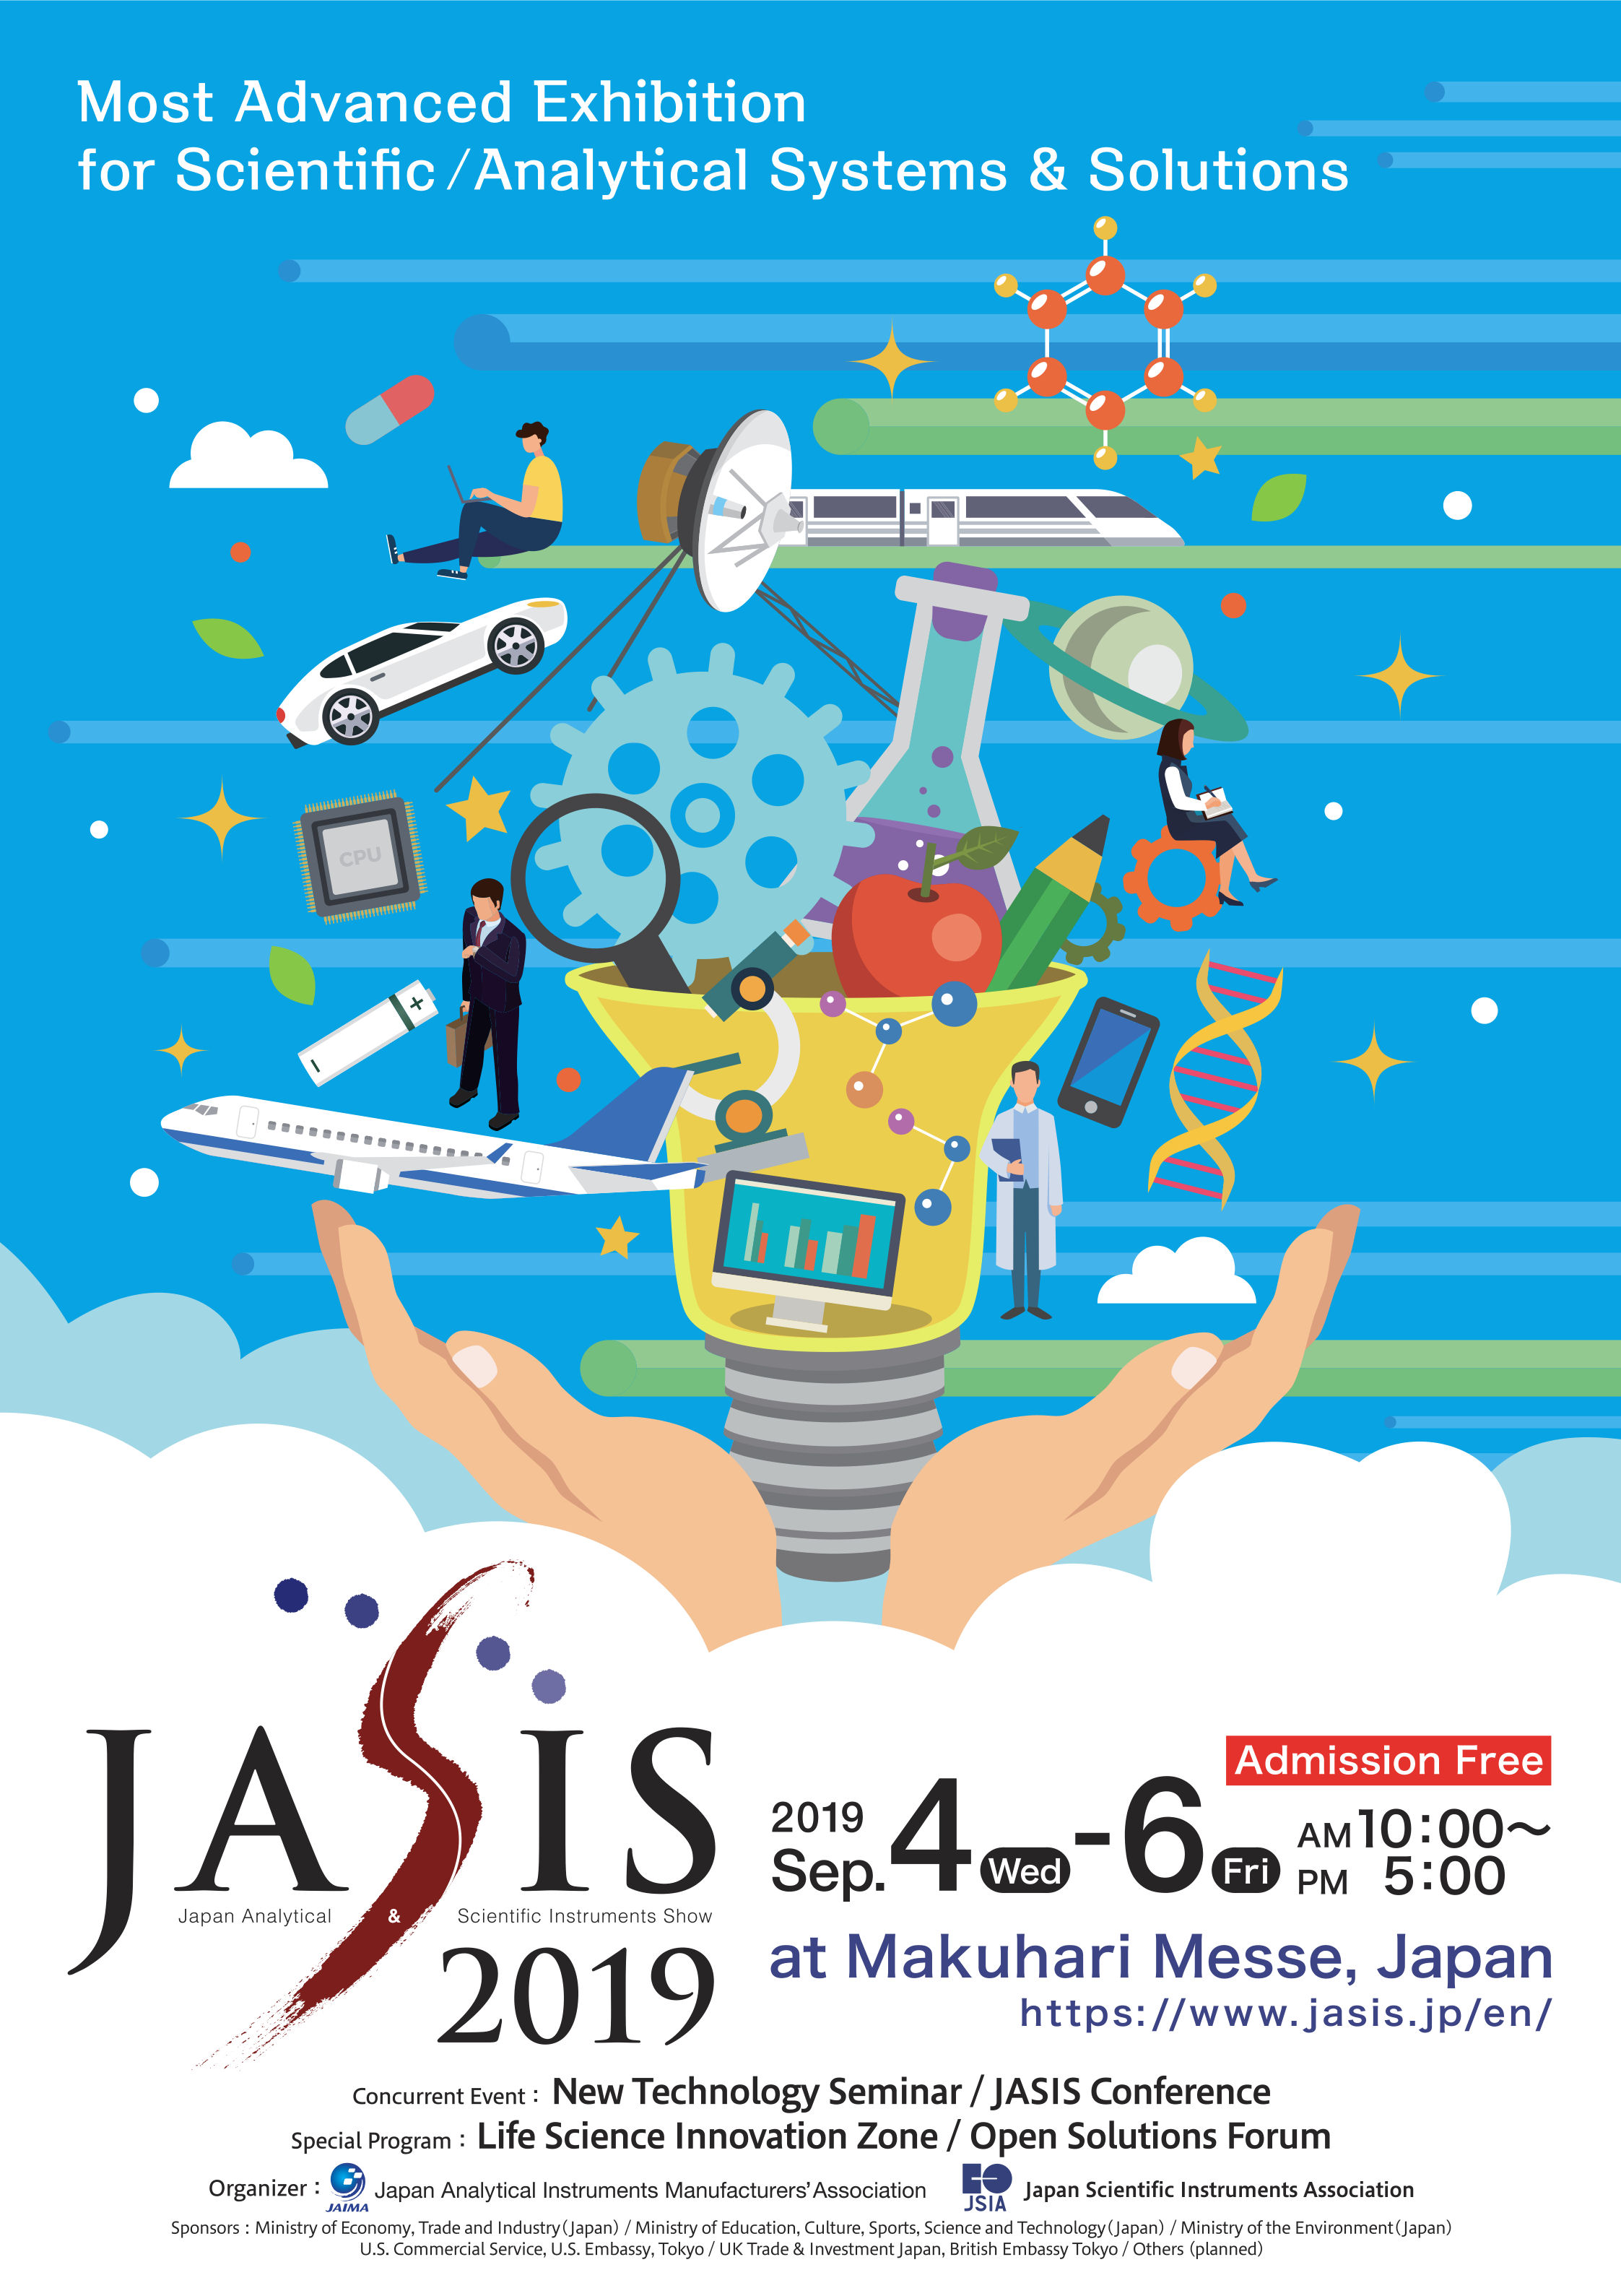 visit us at JASIS 2019, Chiba, Japan